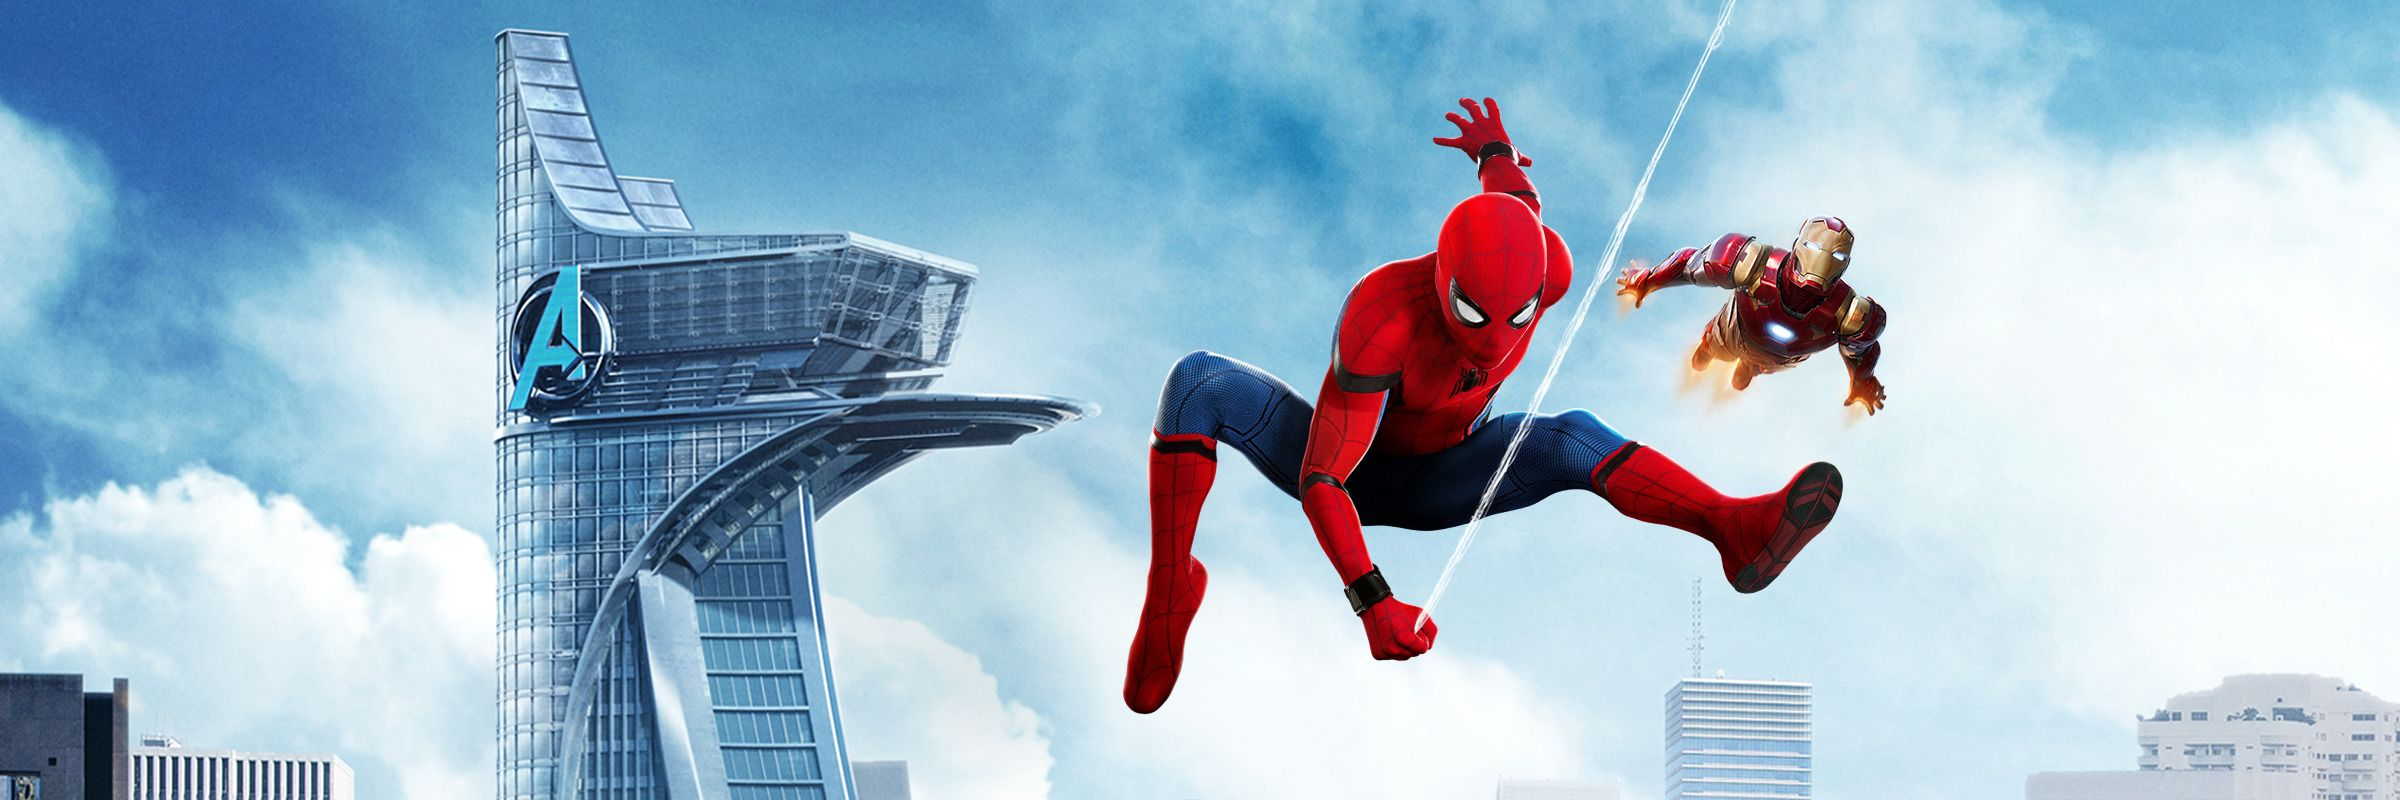 Spider-Man: Homecoming | Full Movie | Movies Anywhere